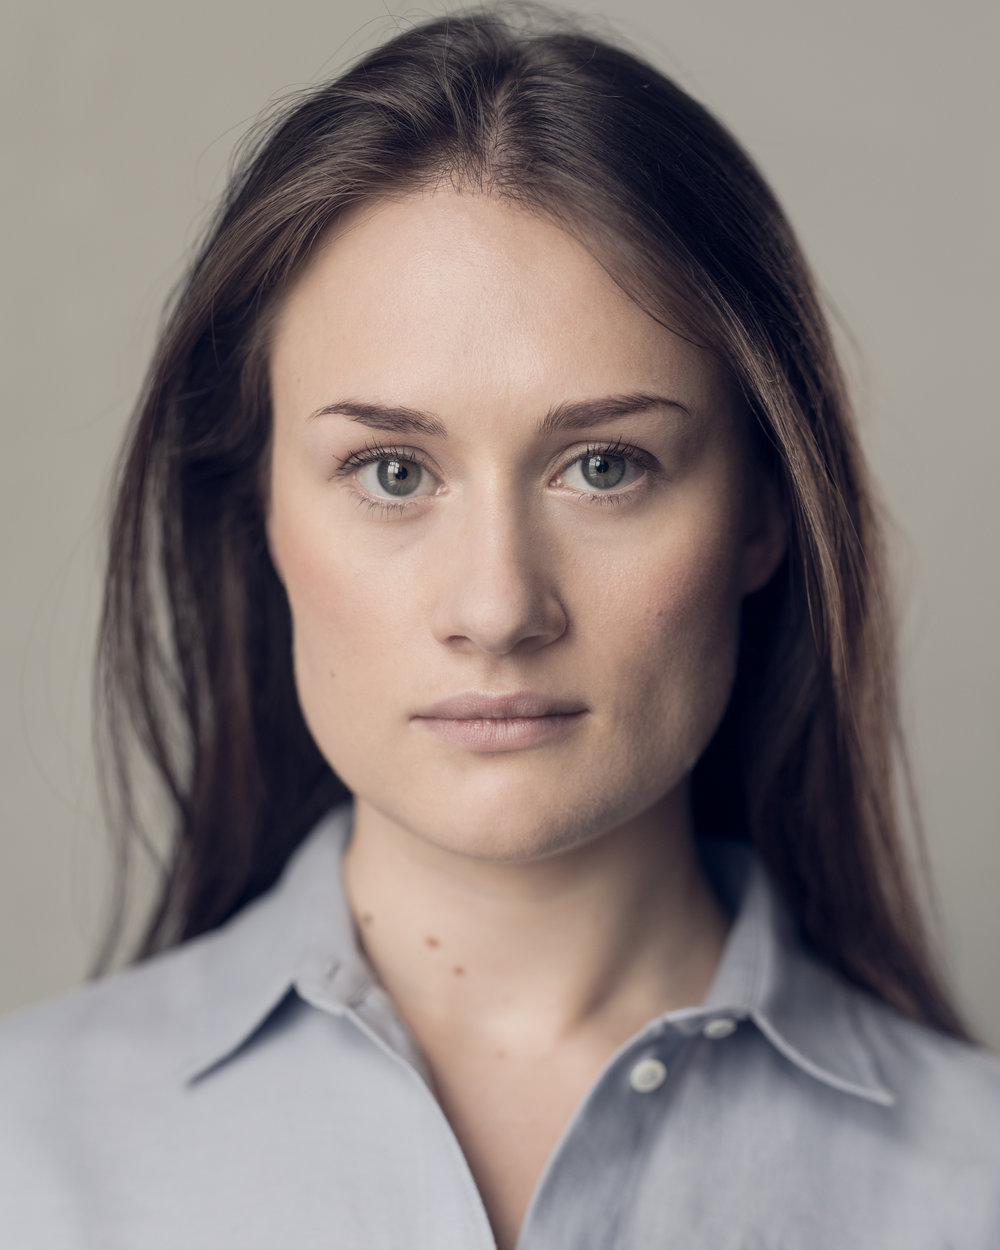 Adaline Waby - Nina  Adeline trained at LAMDA on the BA course. Her recent credits include playing Annie in Mischief Theatre Company's Peter Pan Goes Wrong in the West End, short film The Wake, Maureen in Rent at the Bridewell Theatre, Cath in Mortal Ash, Read Not Dead at The Sam Wanamaker Playhouse, 'PLAY' at the Vaults festival, The Sam Wanamaker festival at the Globe.